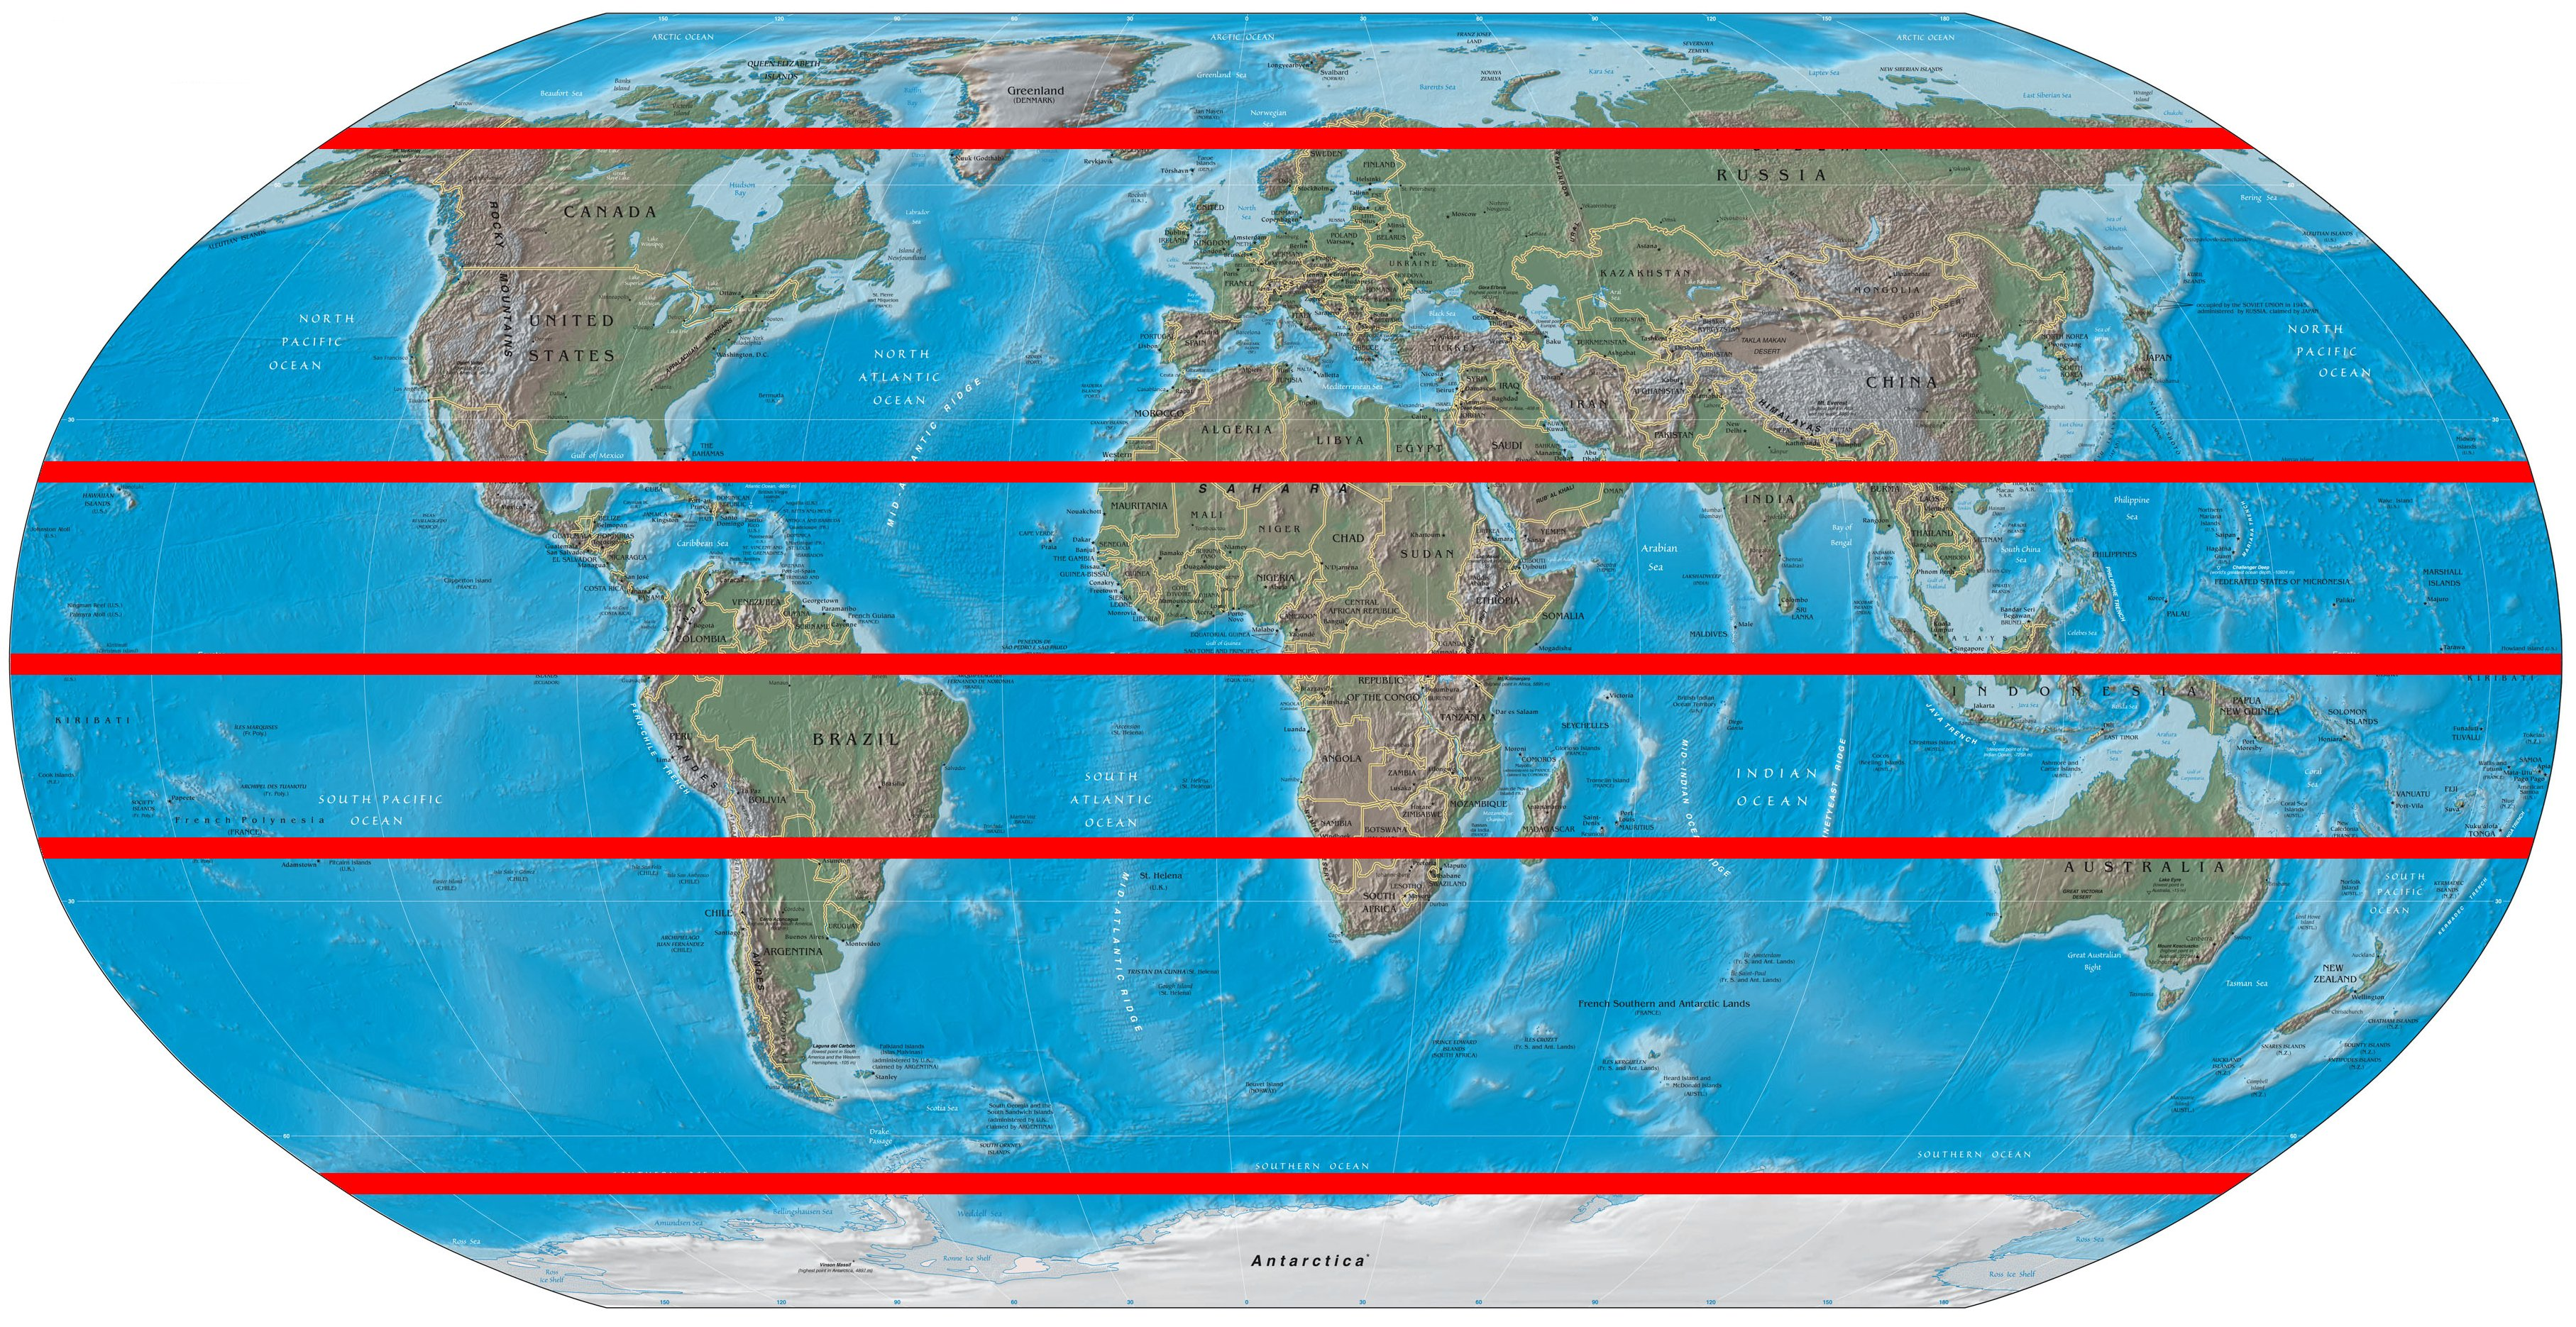 File:World map with major latitude circles.jpg - Wikimedia Commons